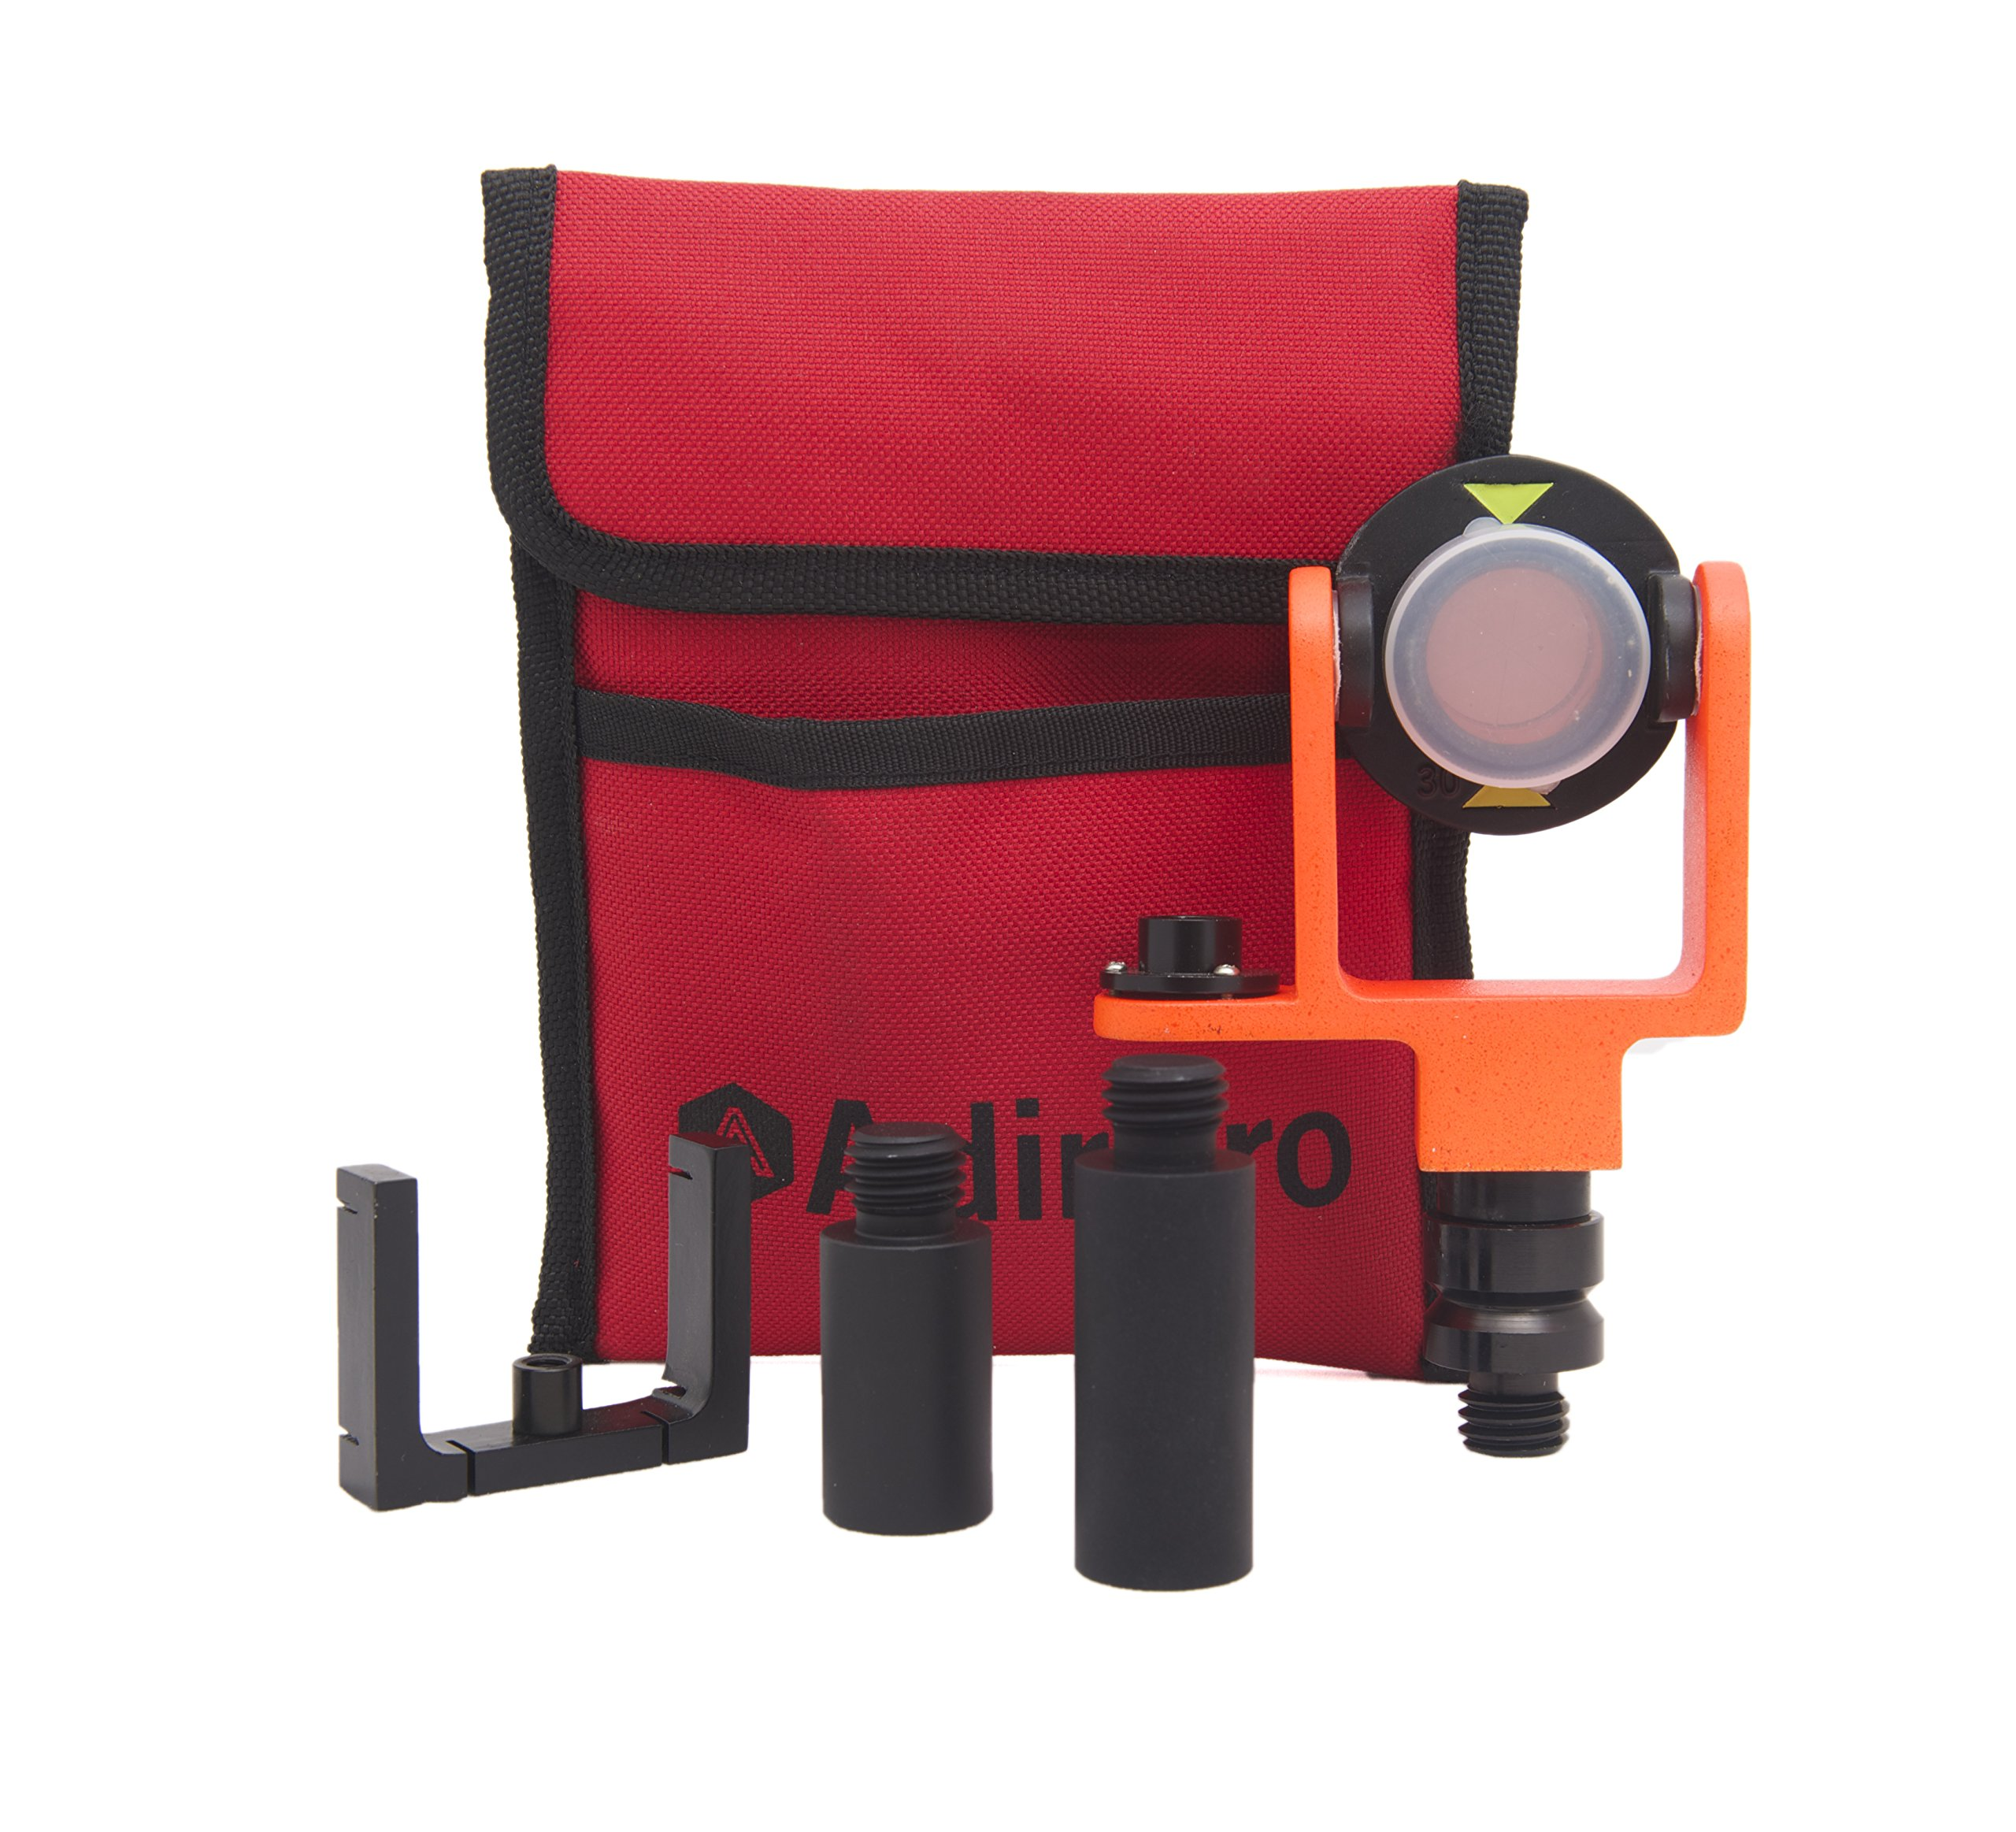 AdirPro Mini Prism System with Side Vial 720-05